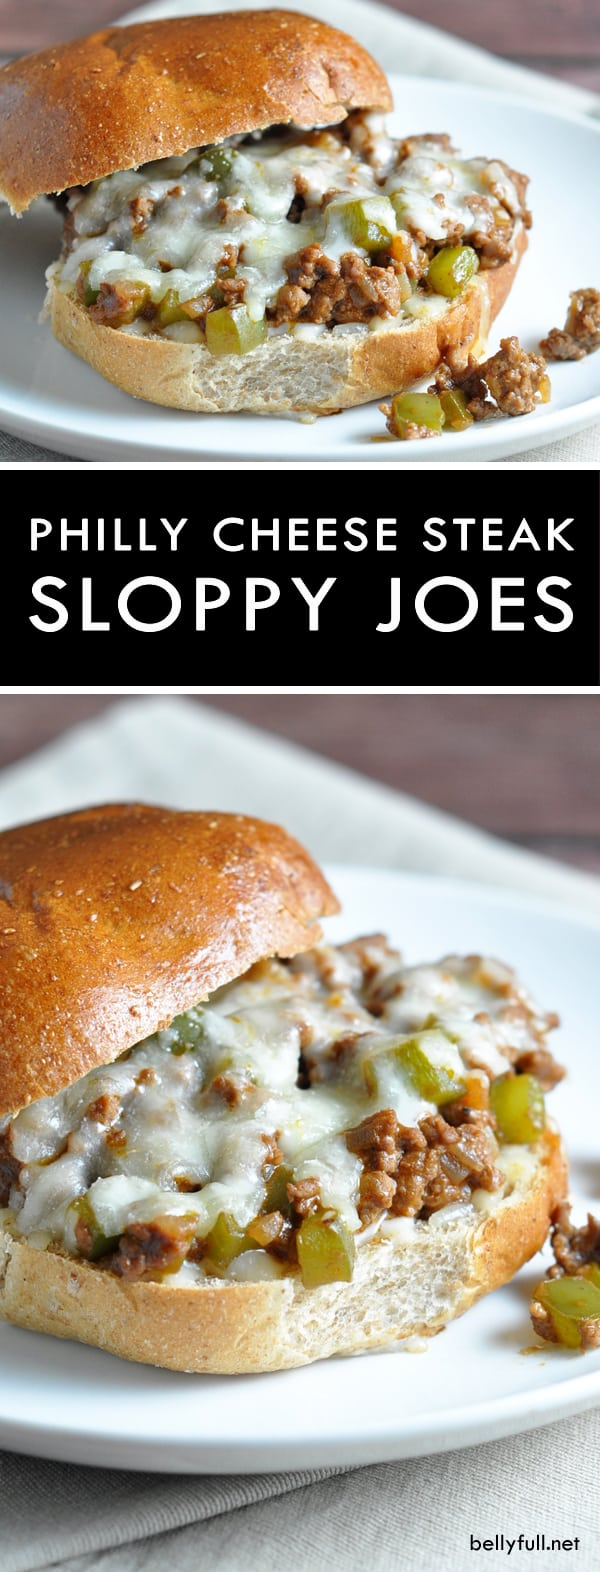 Easy Homemade Philly Cheese Steak Sloppy Joes